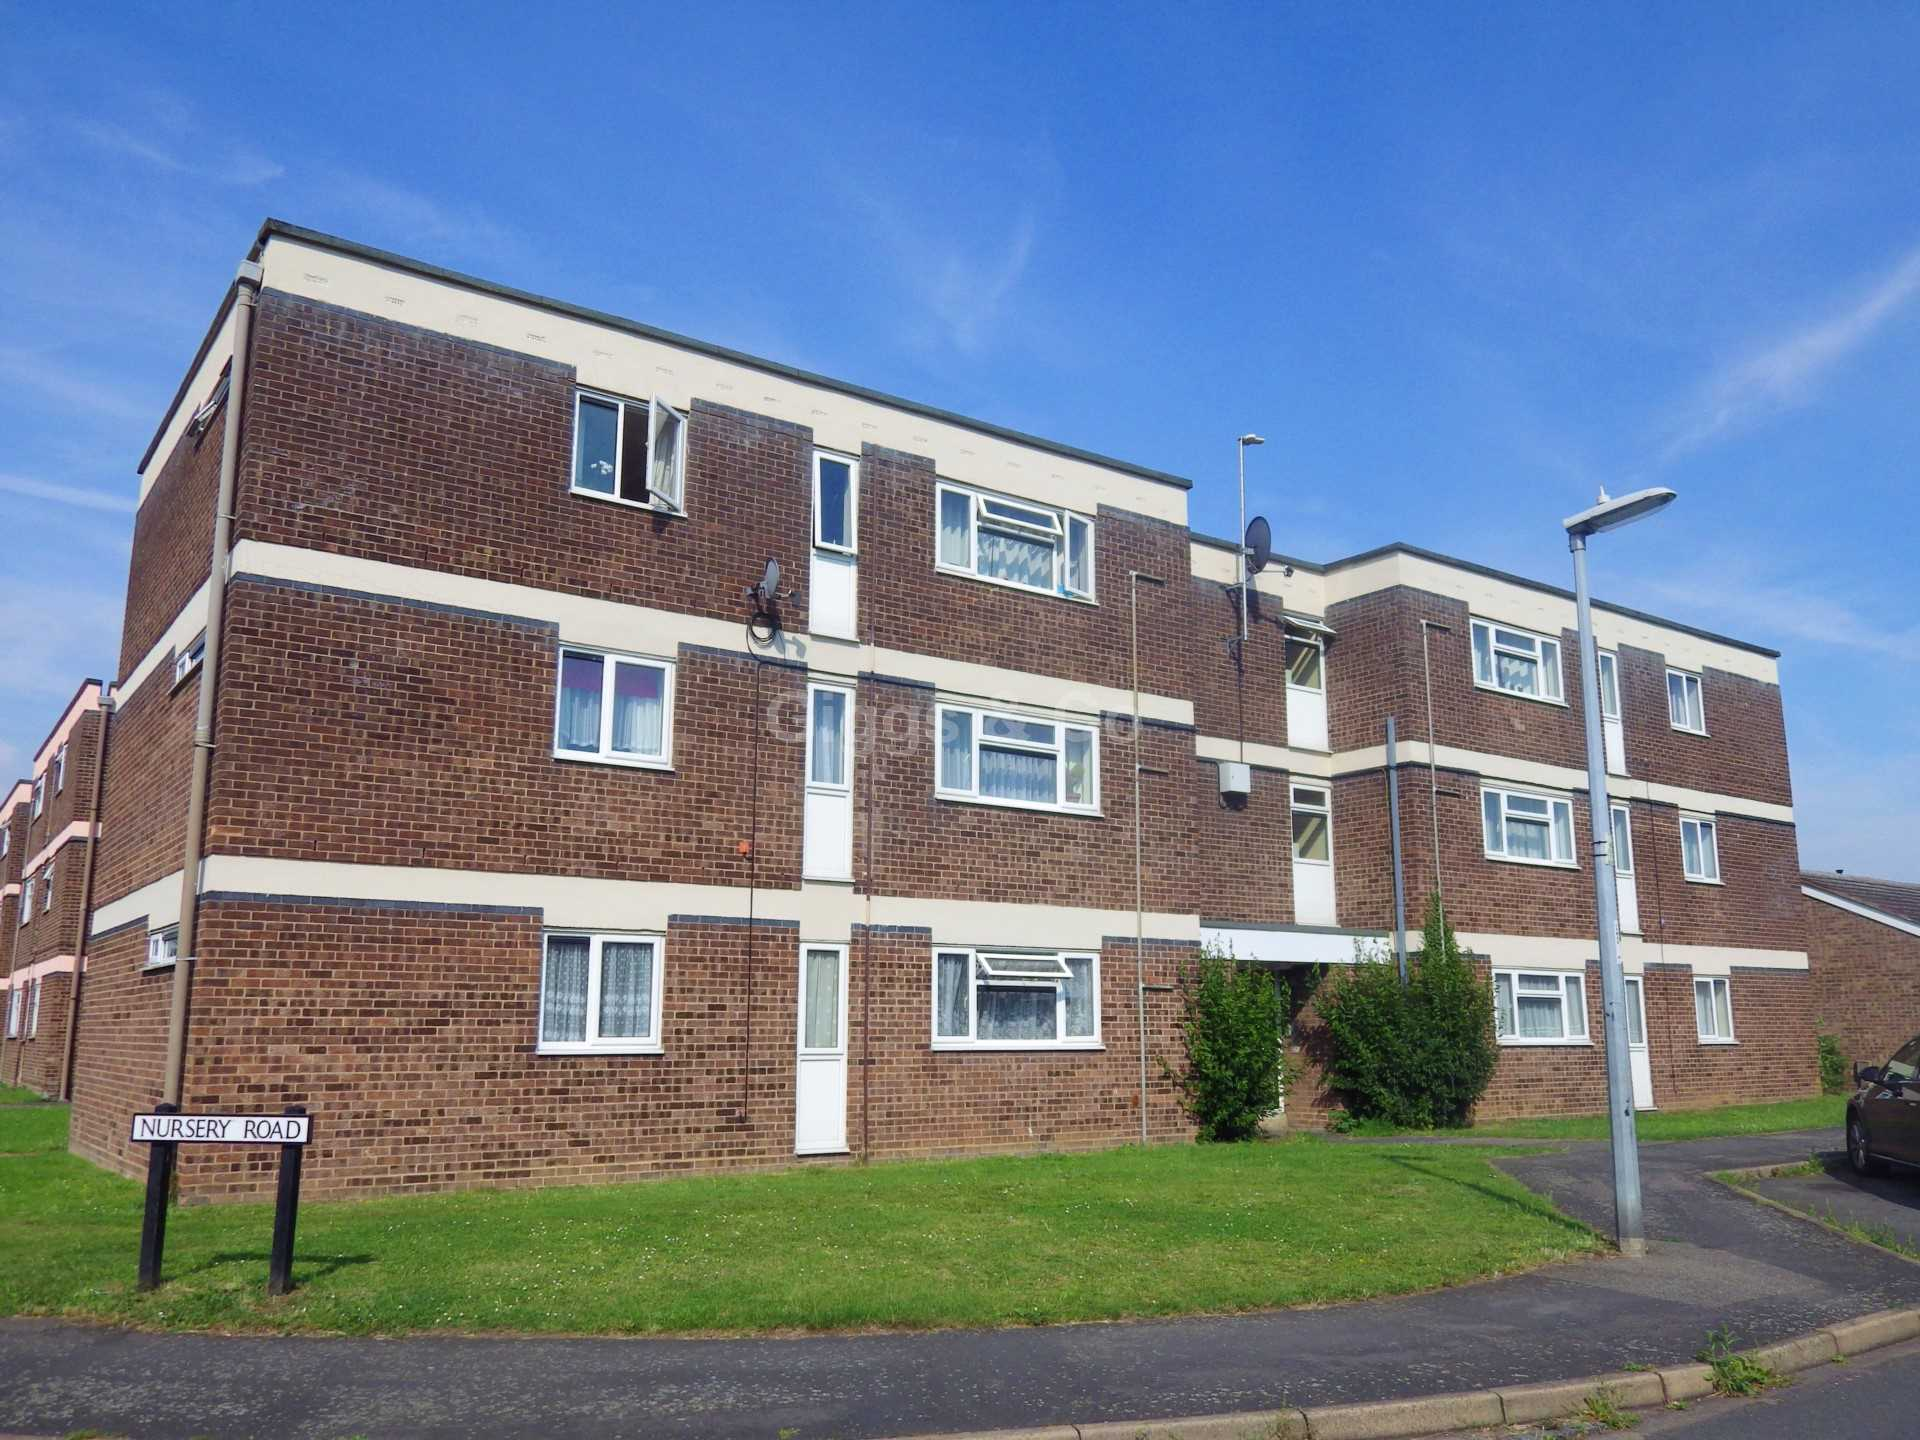 2 bed apartment to rent in Mallard Lane, Eynesbury, St Neots - Property Image 1